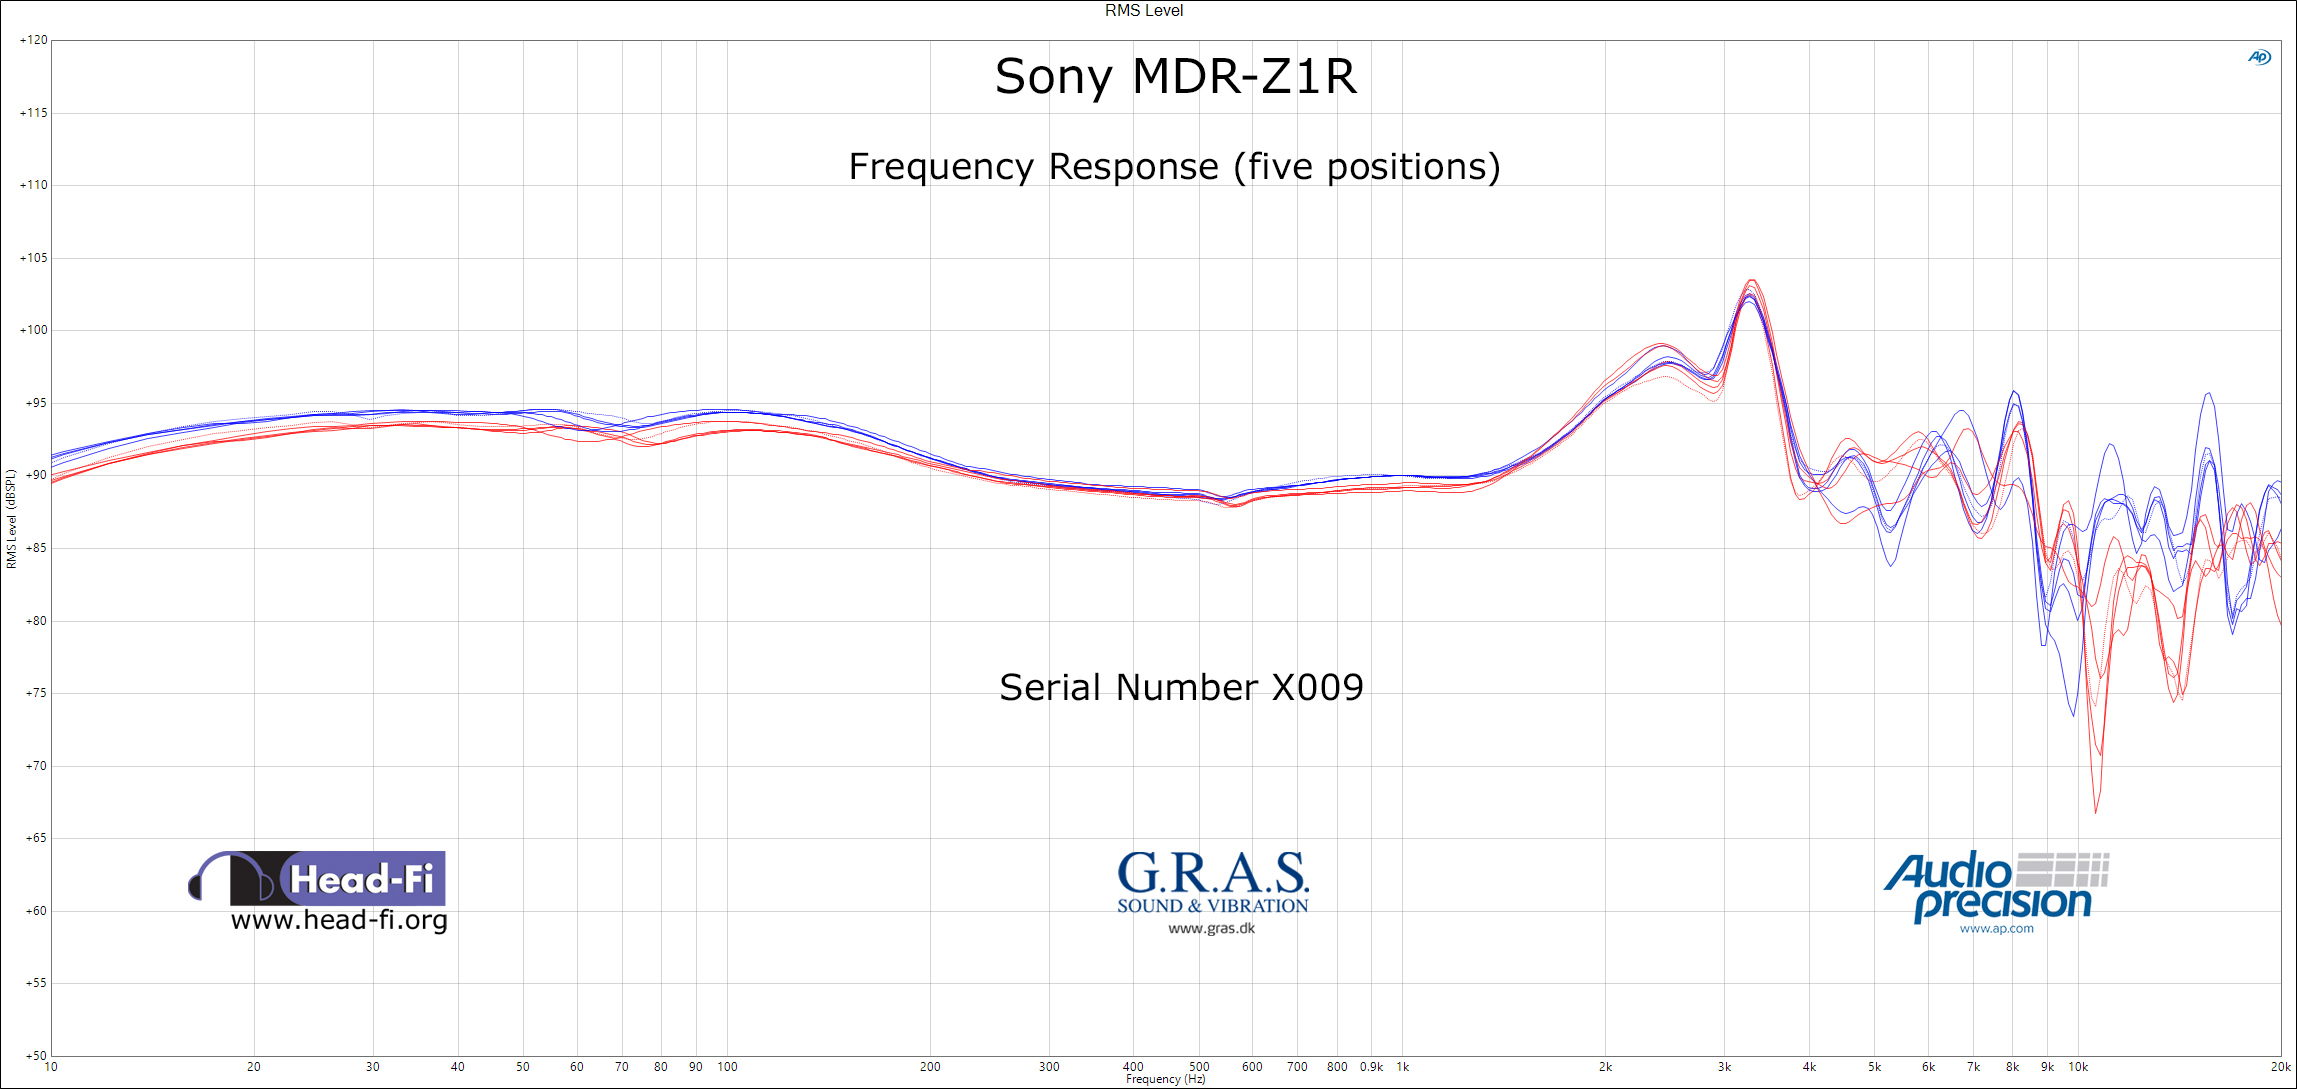 Head-Fi Contradicts InnerFidelity Sony MDR-Z1R Measurements ...